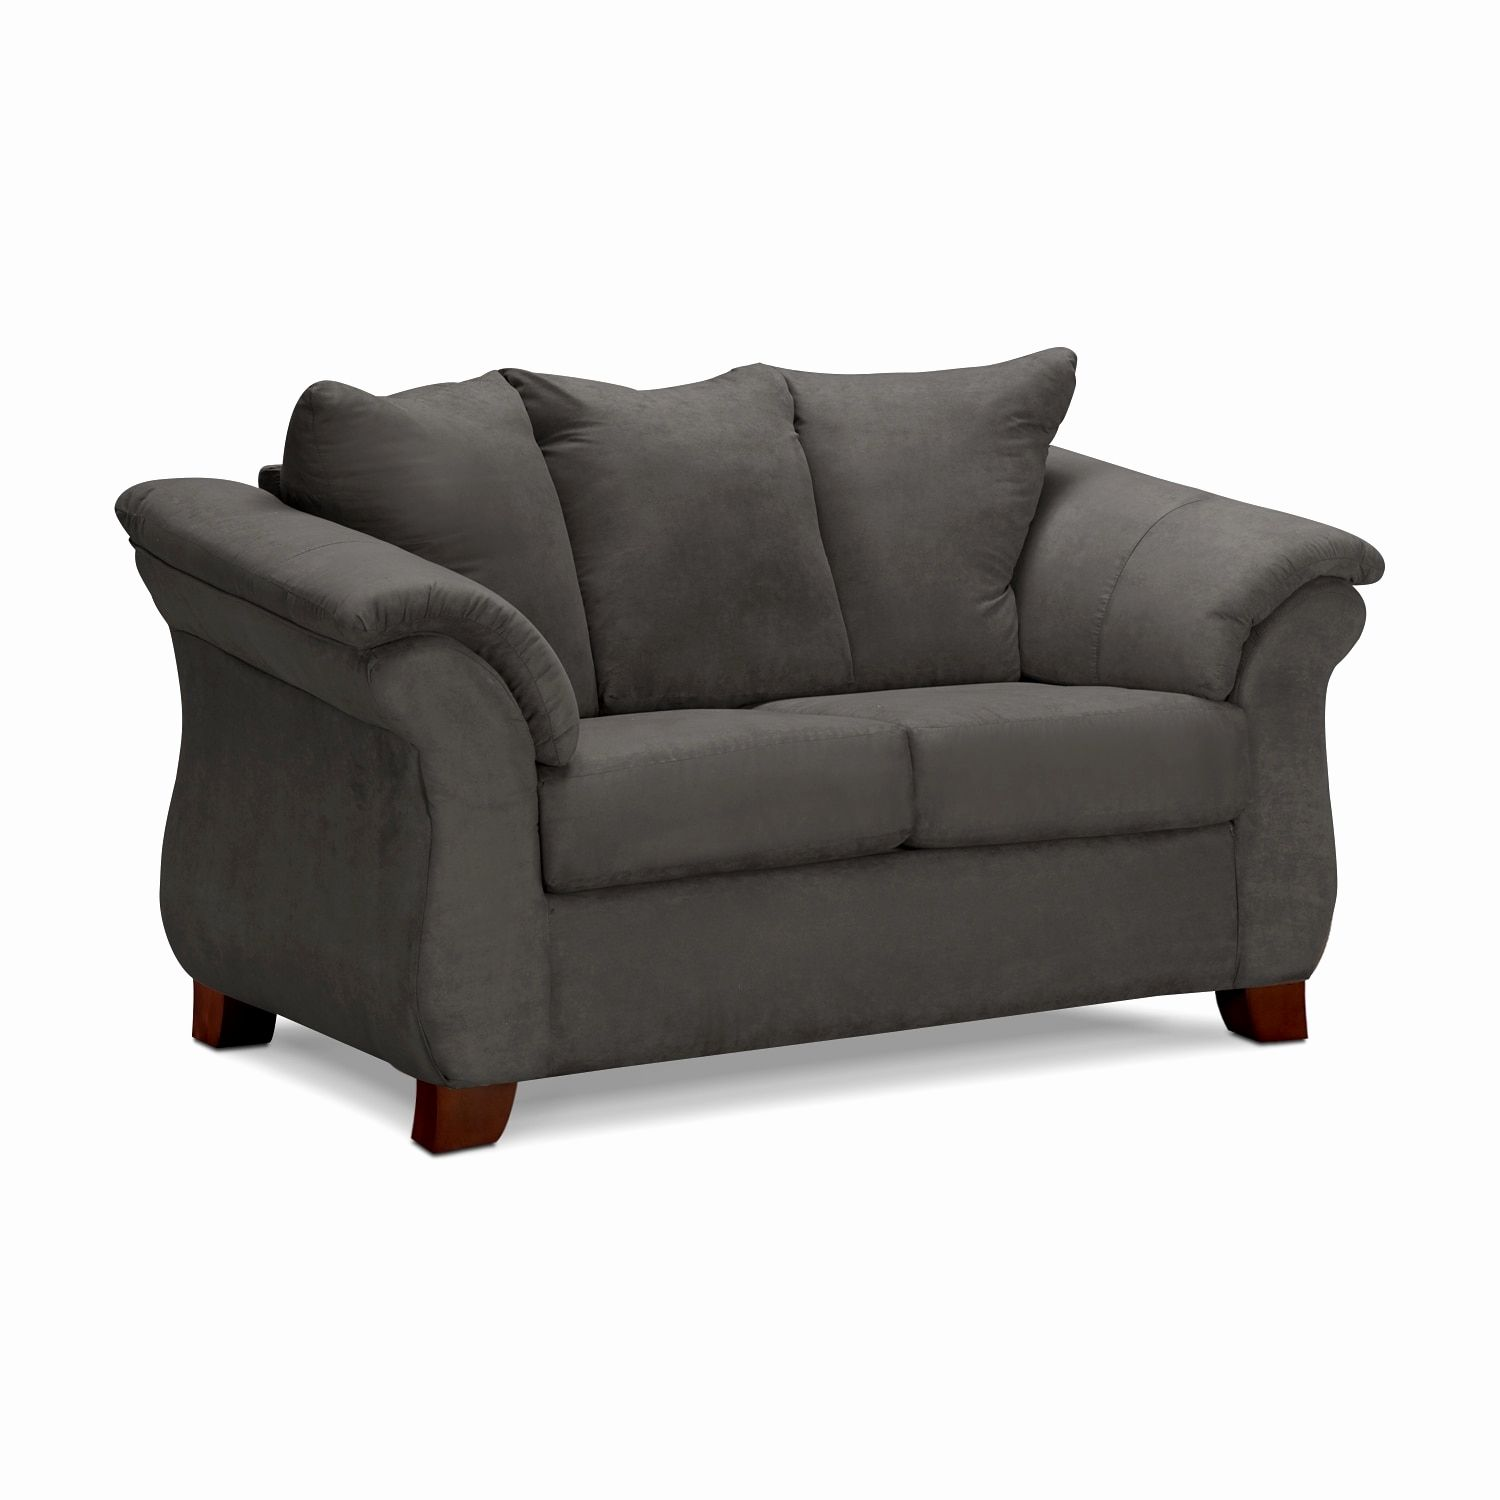 Sofa Sleepers Ikea Image Sofa Sleepers Ikea Fresh Love Seat Twin Sofa  Sleeper Small Sleeper Sectional